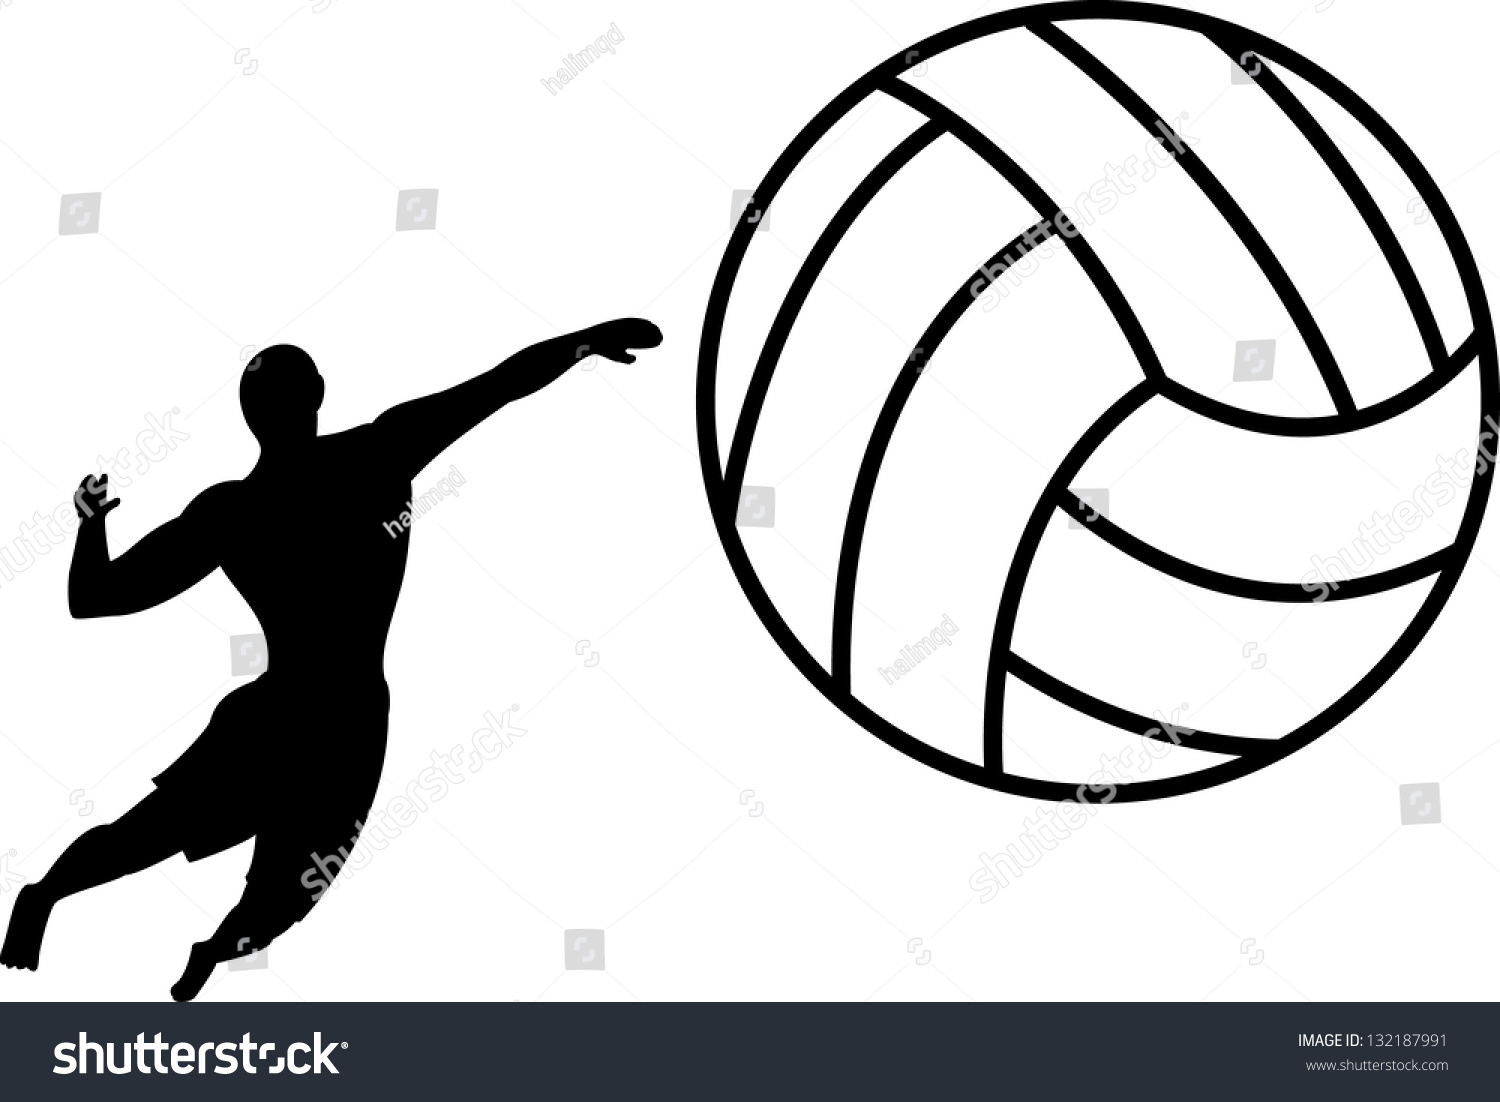 Abstract Triangle Volleyball Player Silhouette Stock: Silhouette Of Beach Volley Stock Vector Illustration